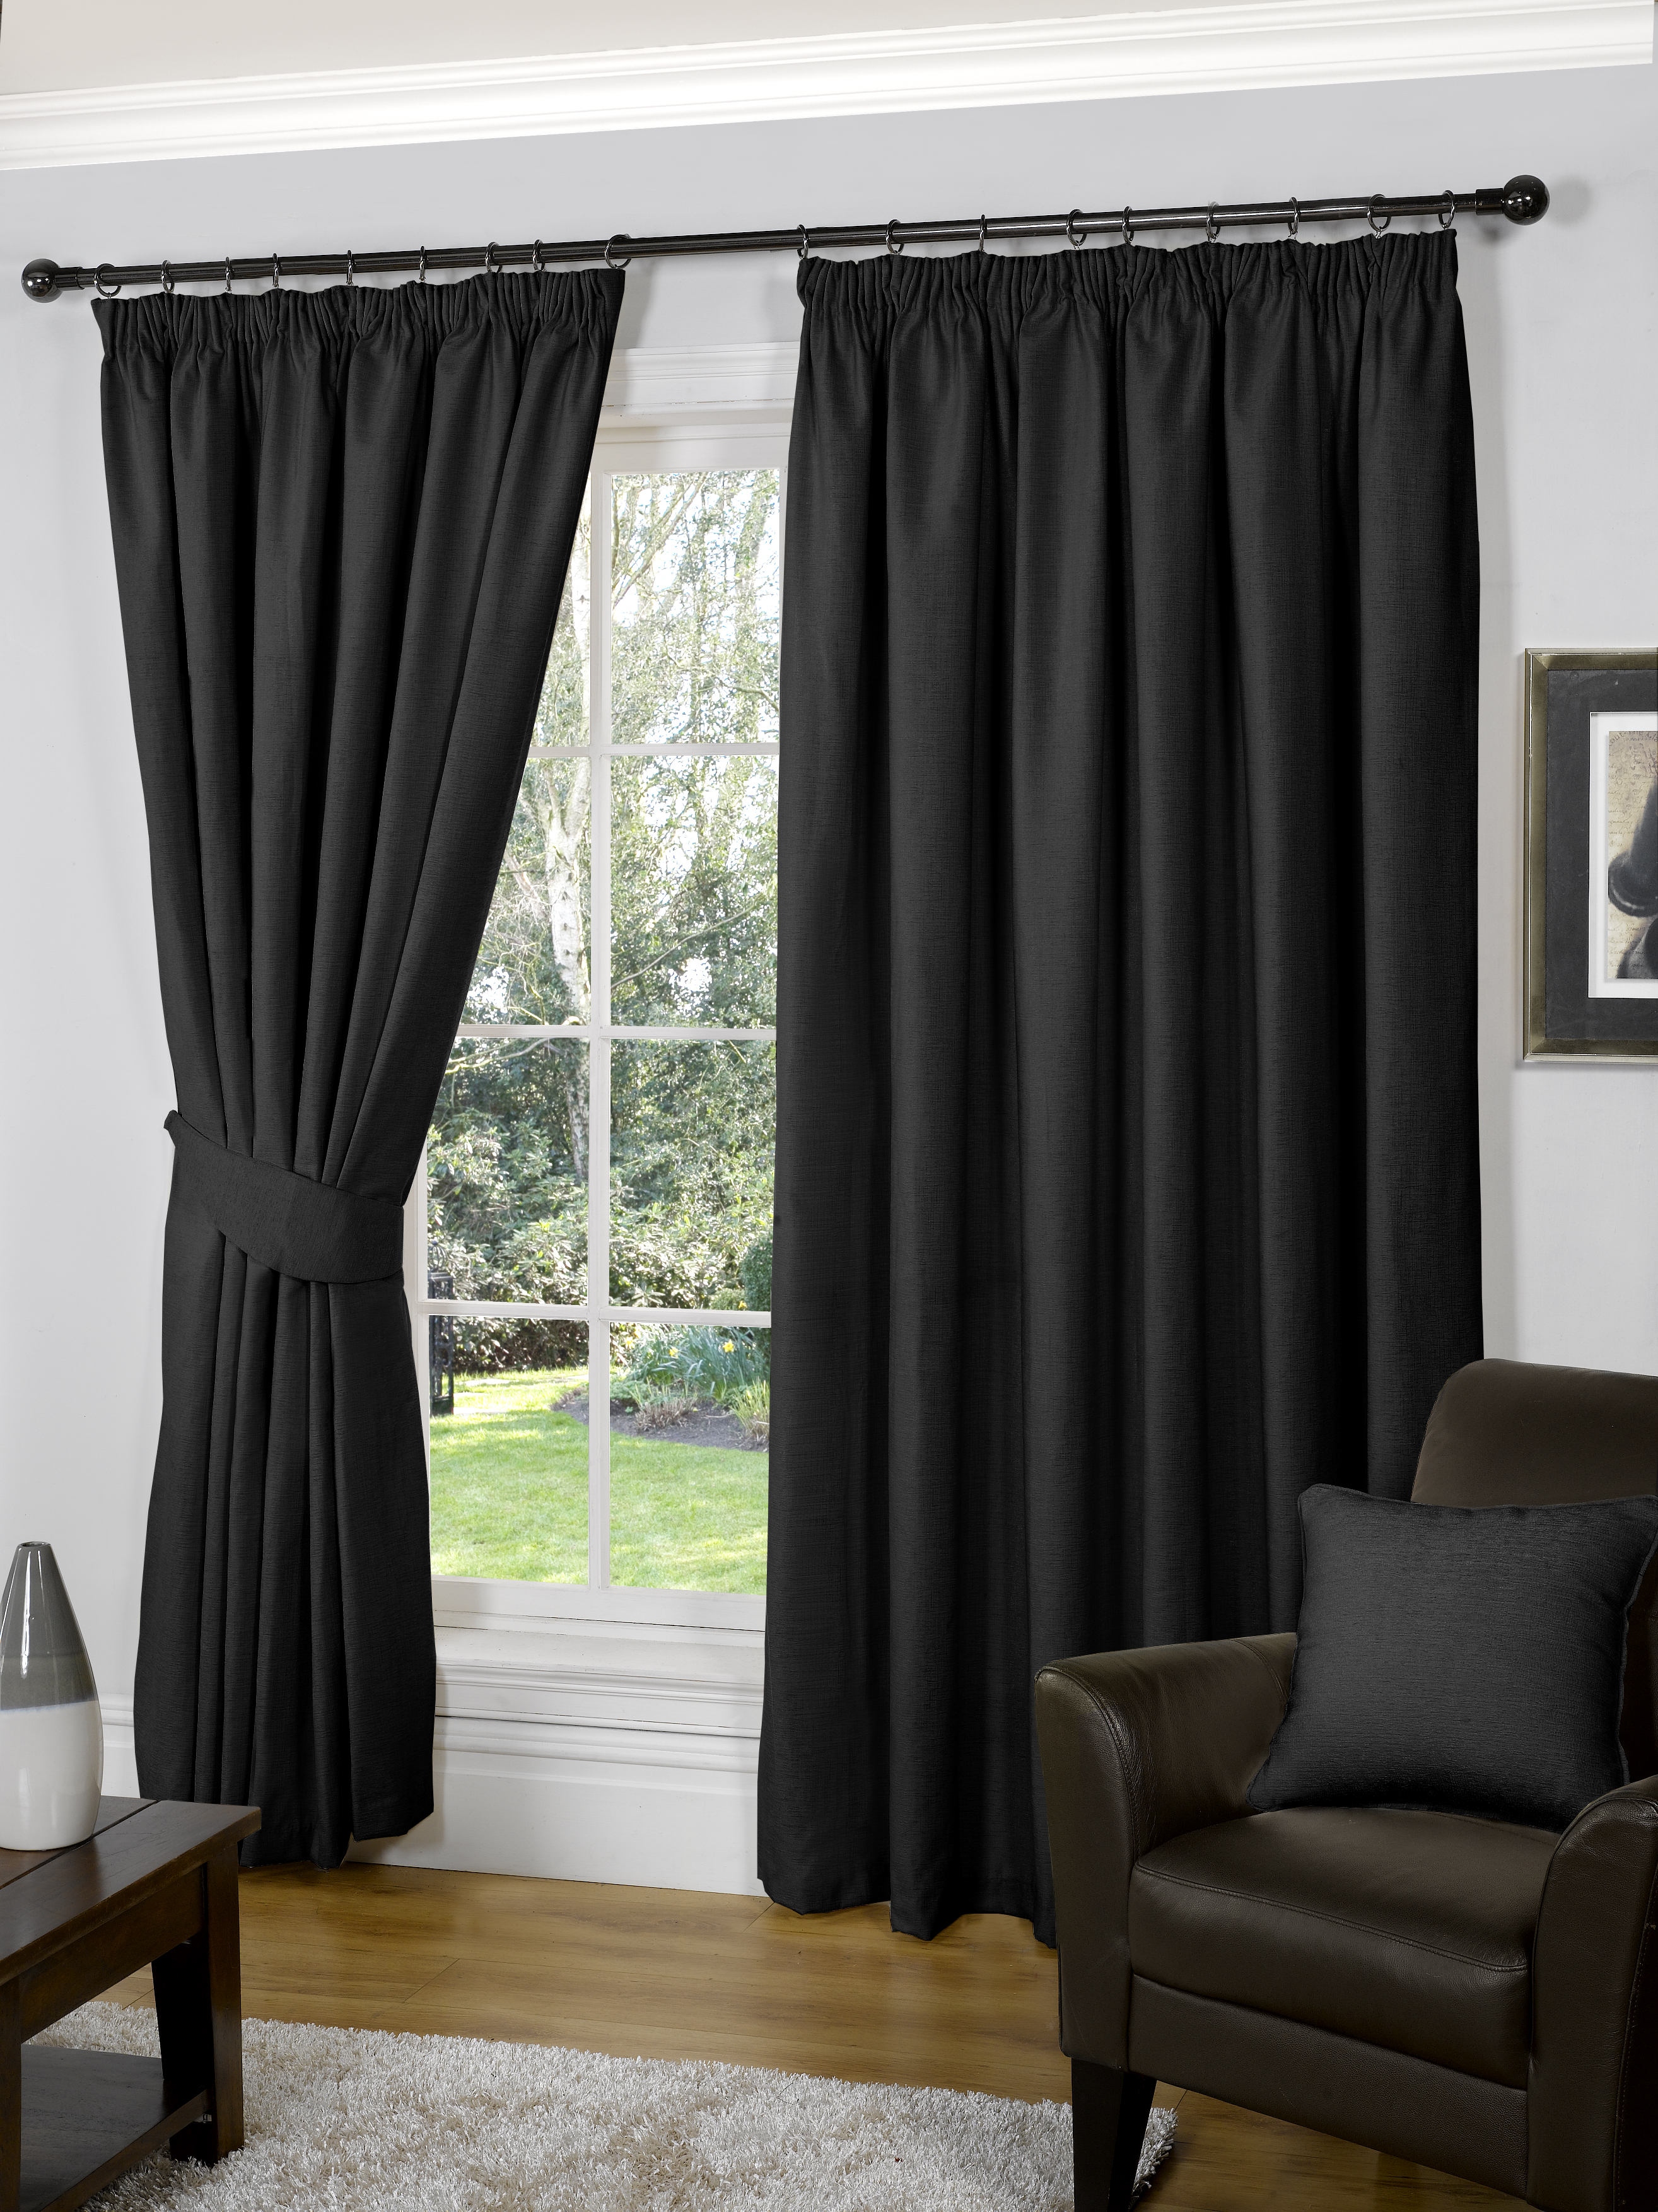 90 X 54 Black Fully Lined Ready Made Curtains Luxury Tape